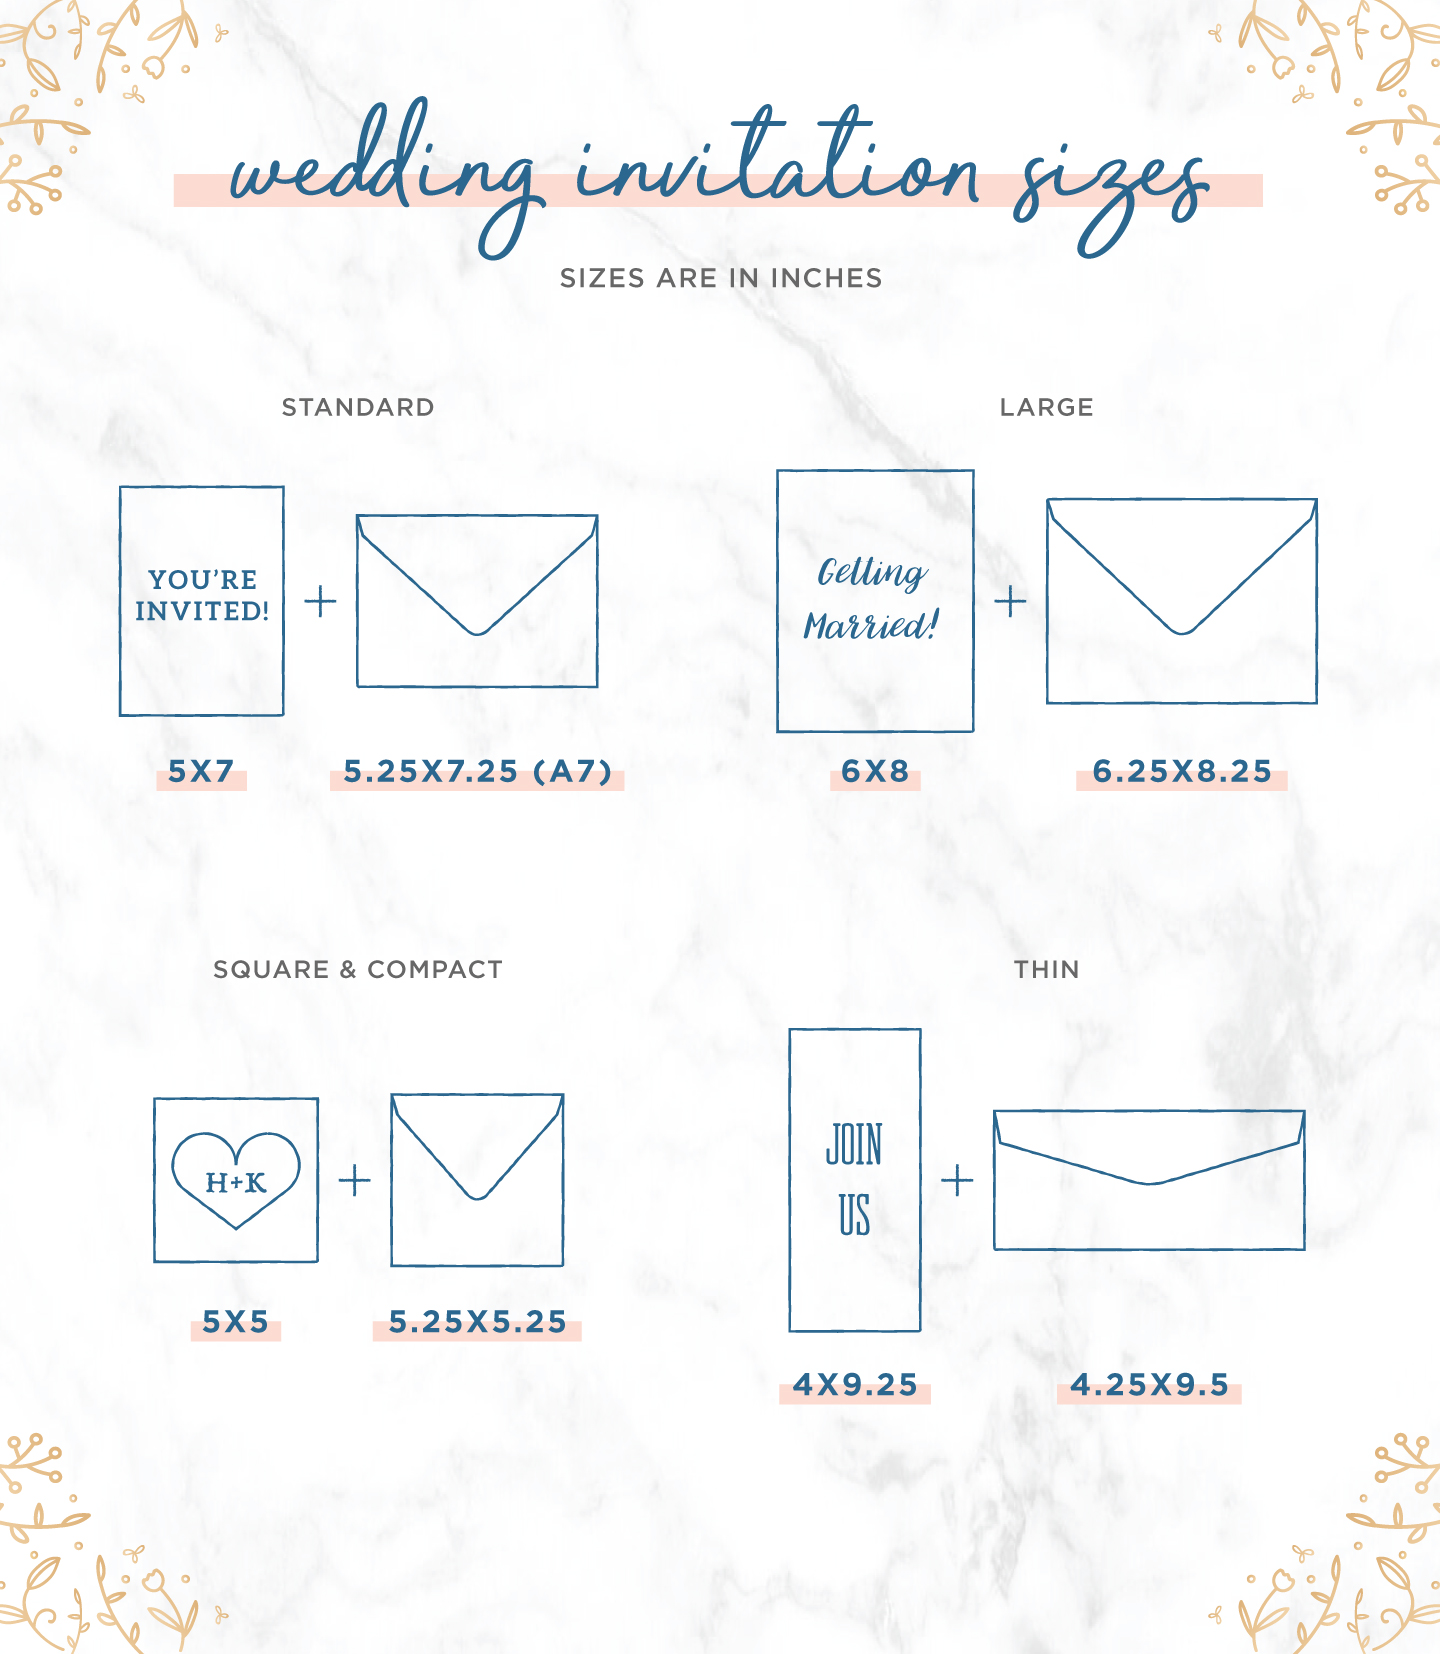 Wedding invitation sizes infographic.